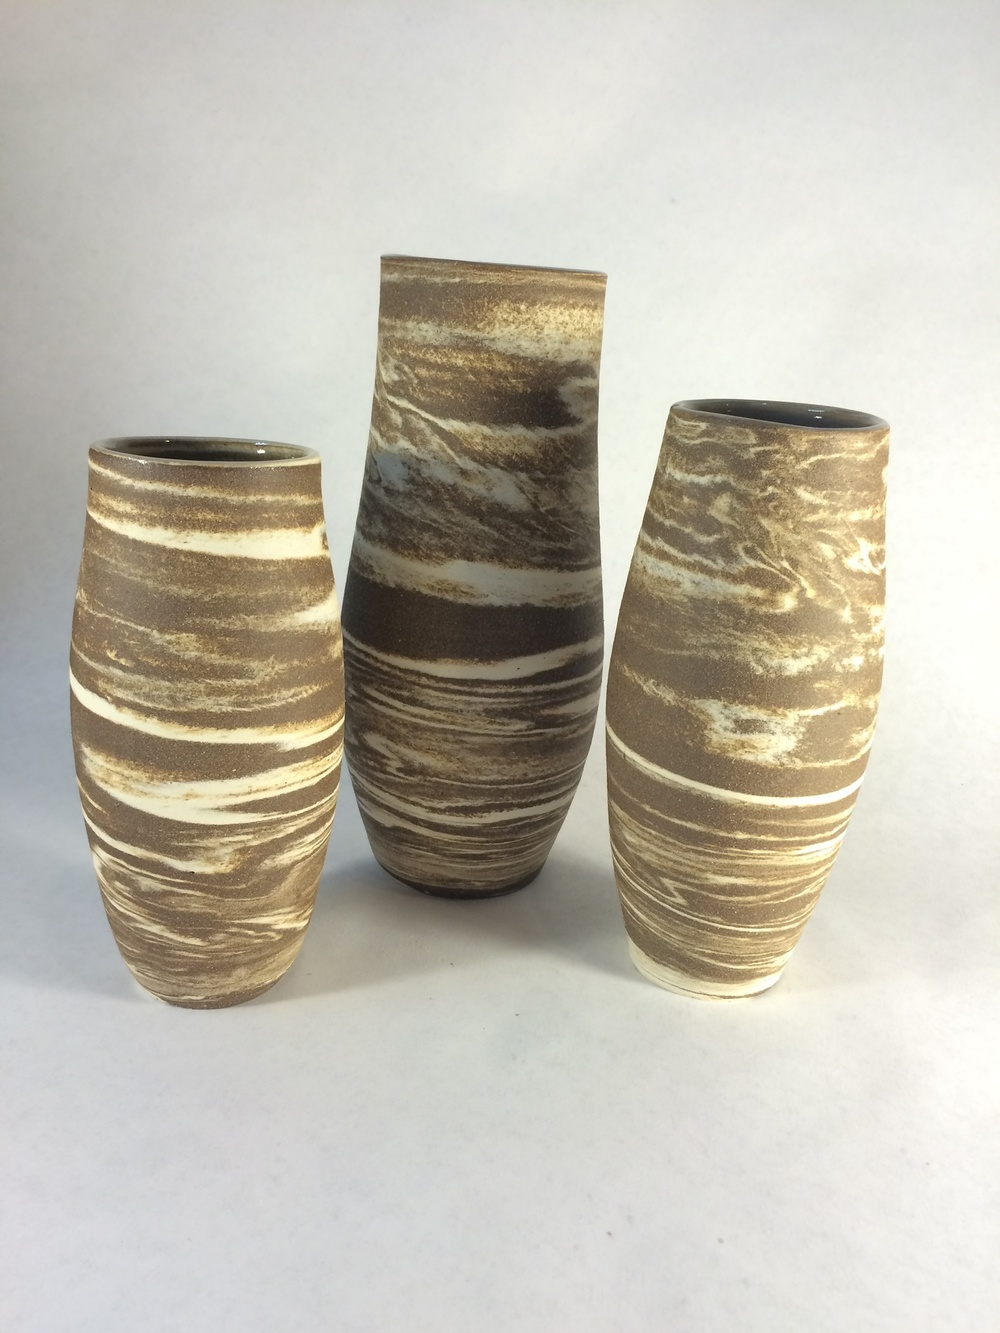 """Chocolate & Vanilla Swirl"" Assorted Vases, 2015"